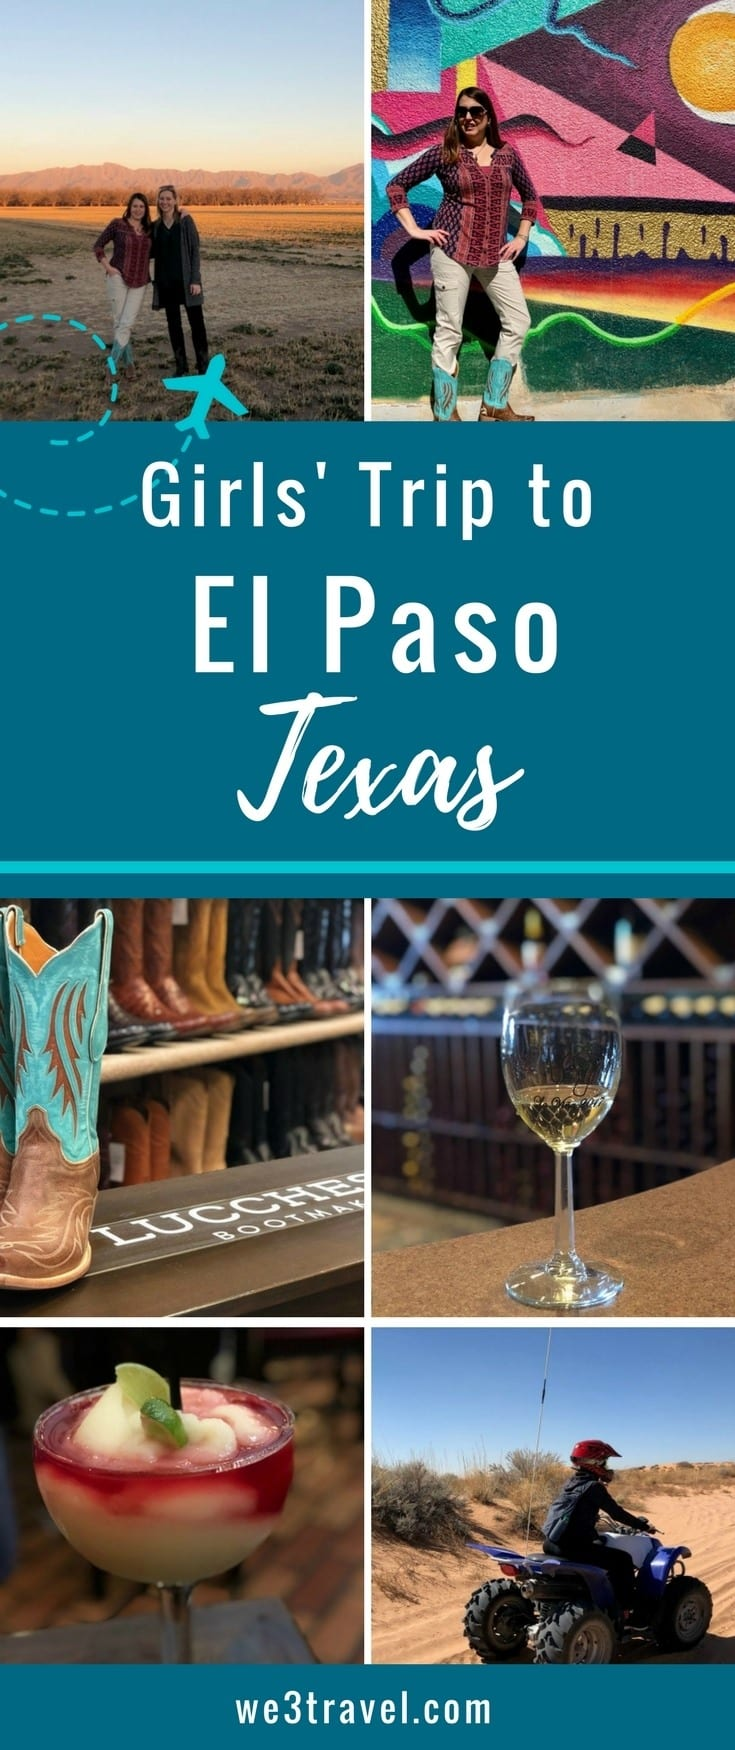 El Paso Texas girls trip with things to do in El Paso, El Paso restaurants and where to stay in El Paso on a Texas getaway